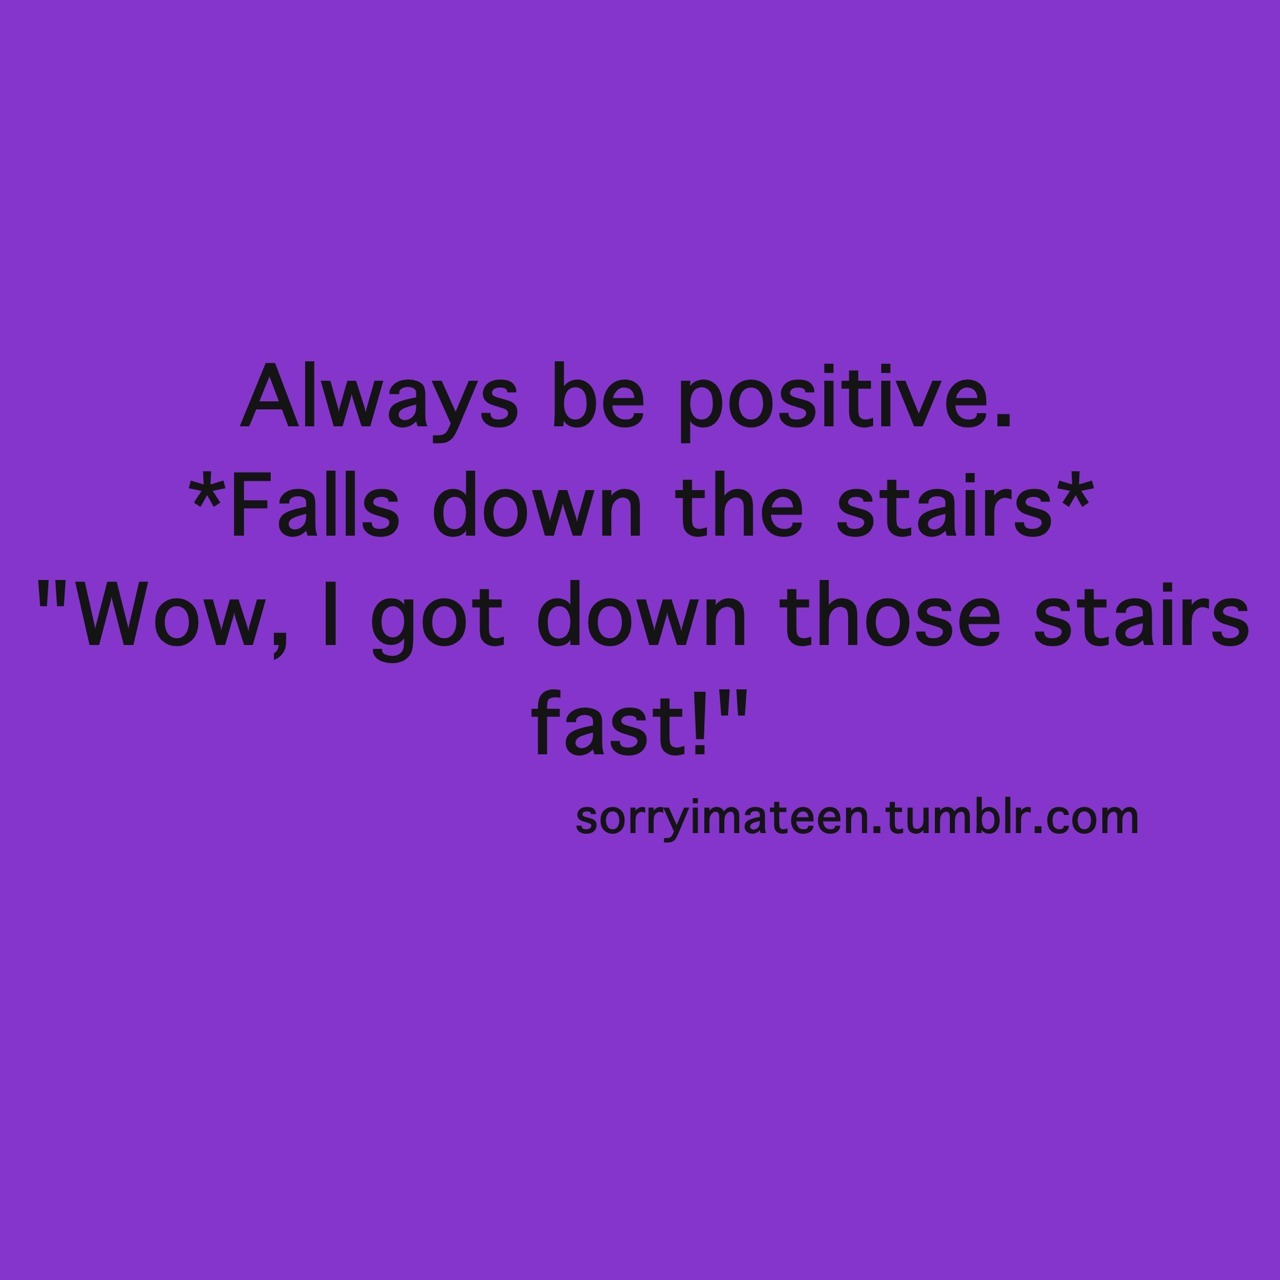 always be positive - meme